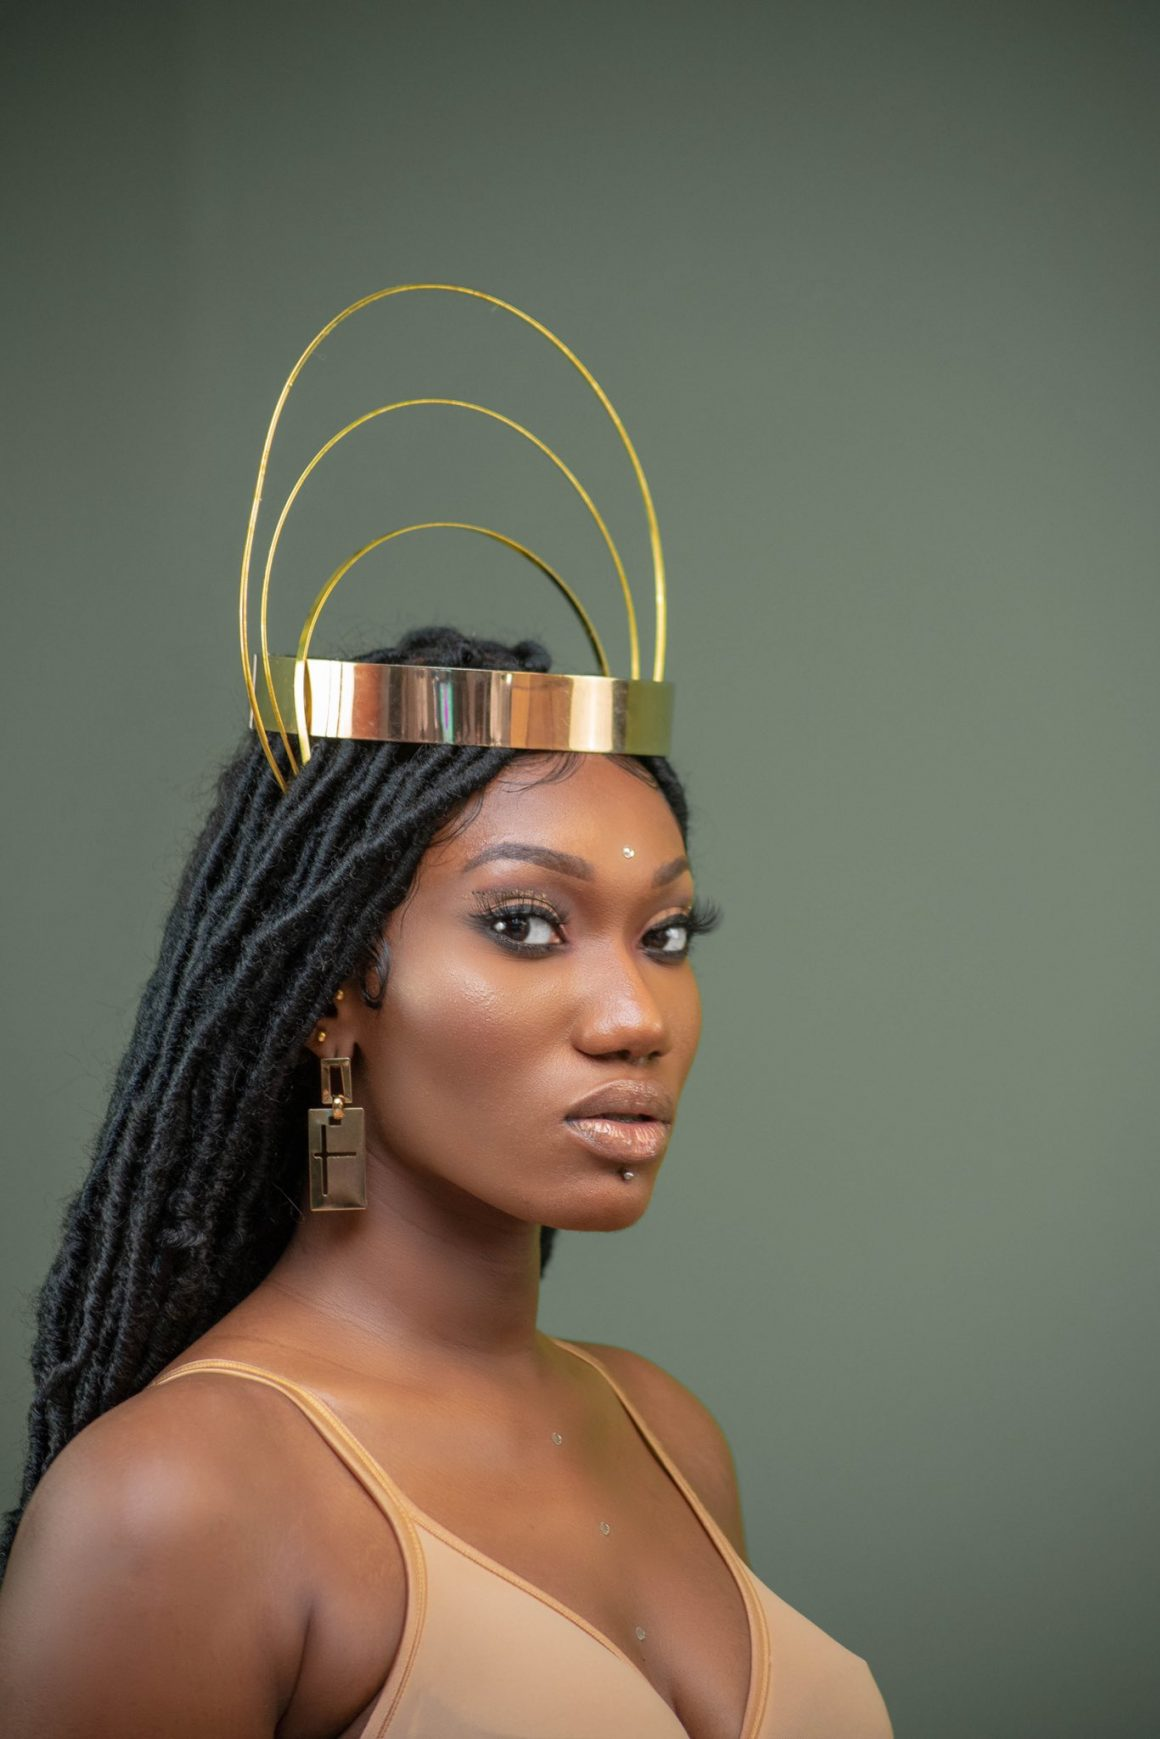 people-who-look-like-insults-always-insulting-me-wendy-shay-responds-to-trolls